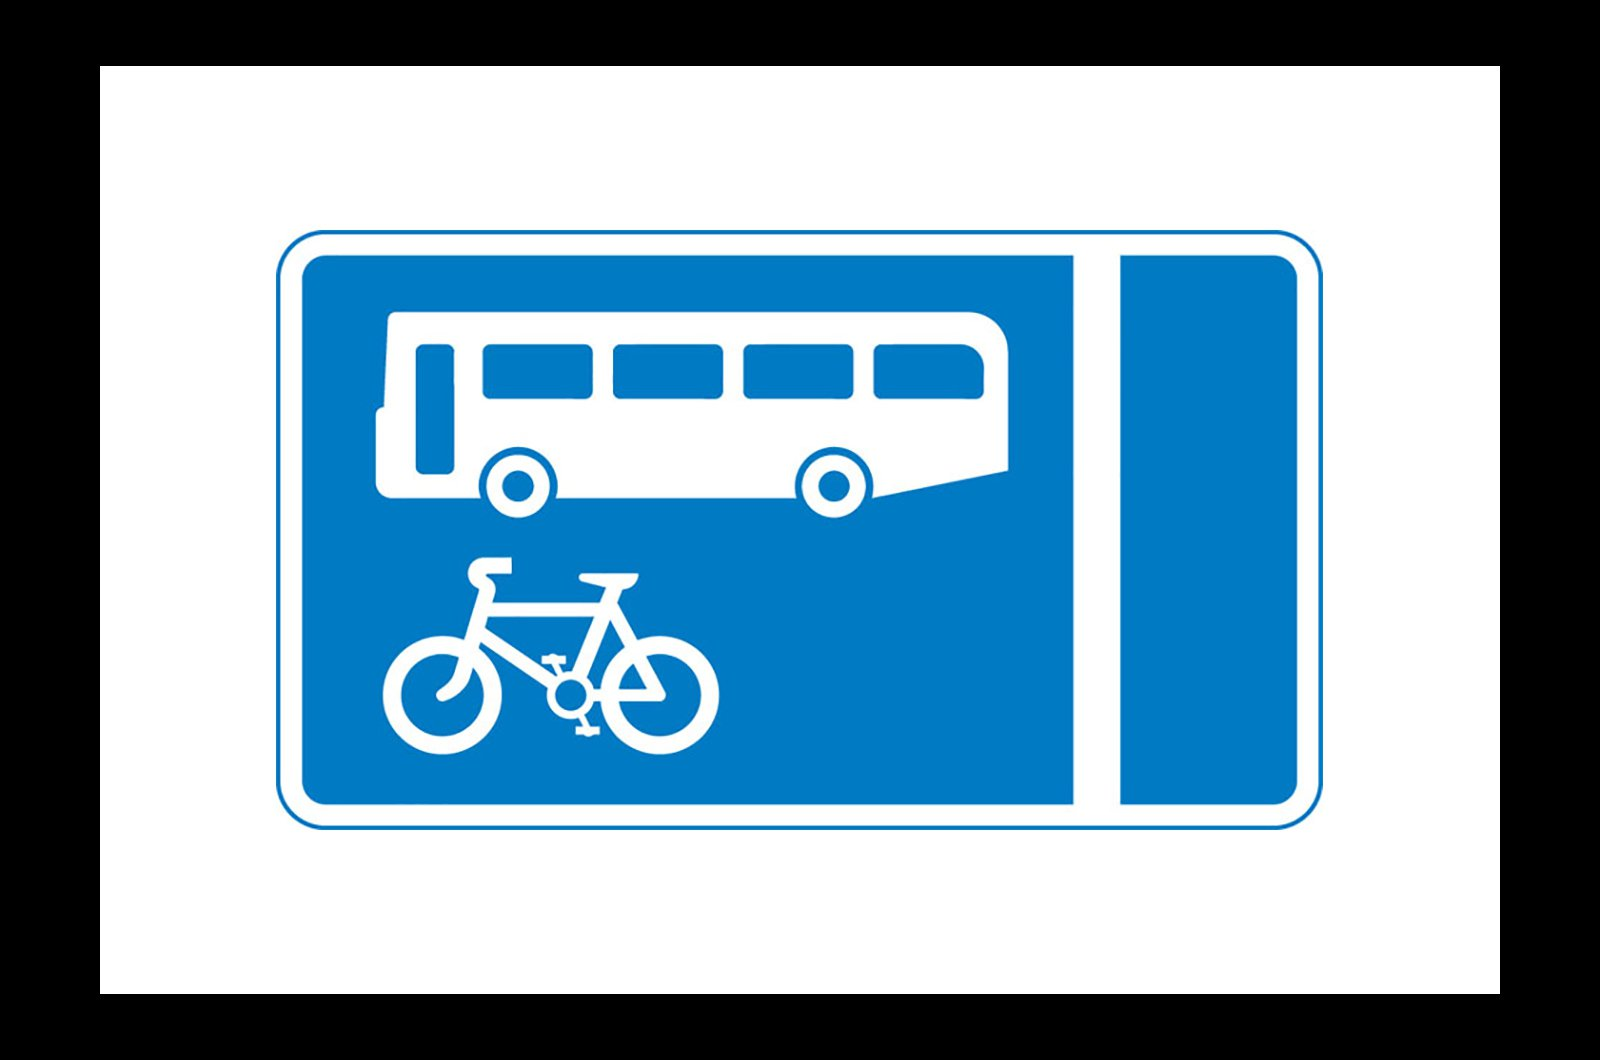 With-flow bus and cycle lane